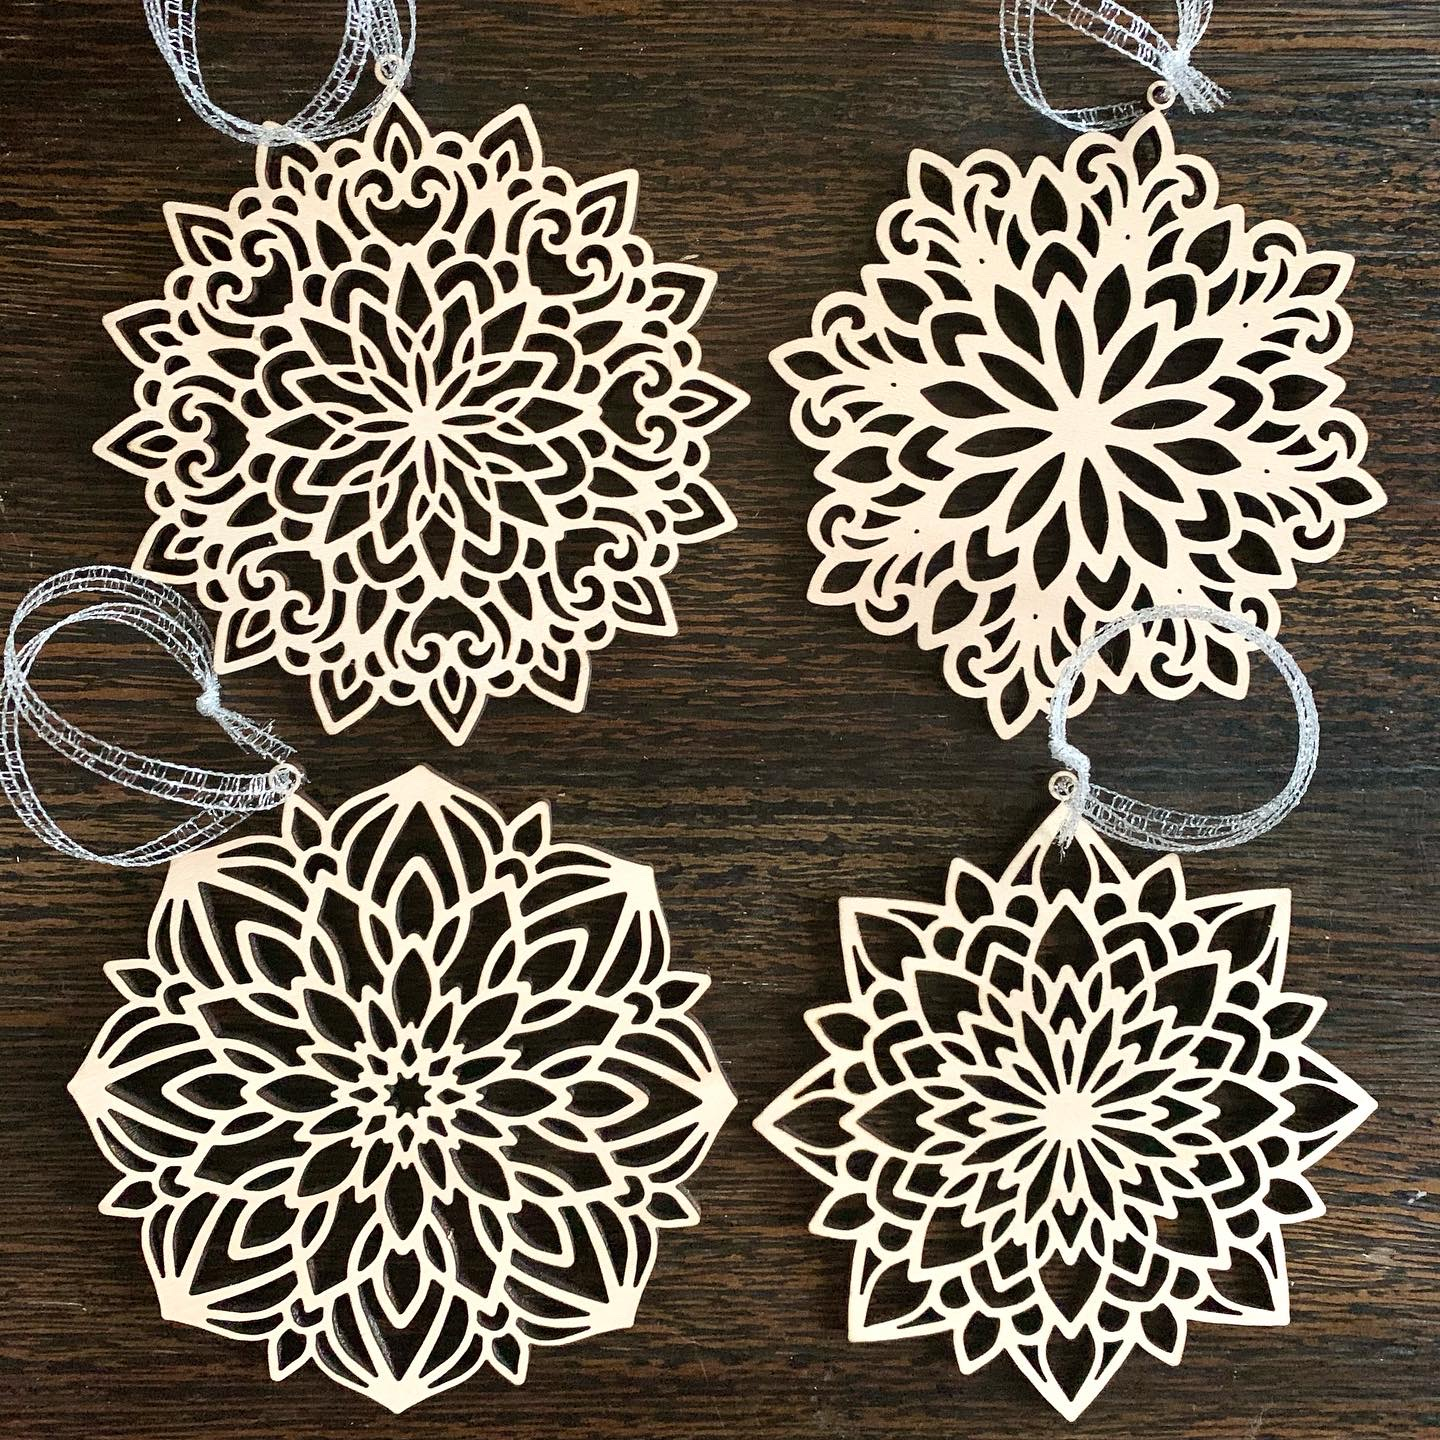 Mandala Ornaments